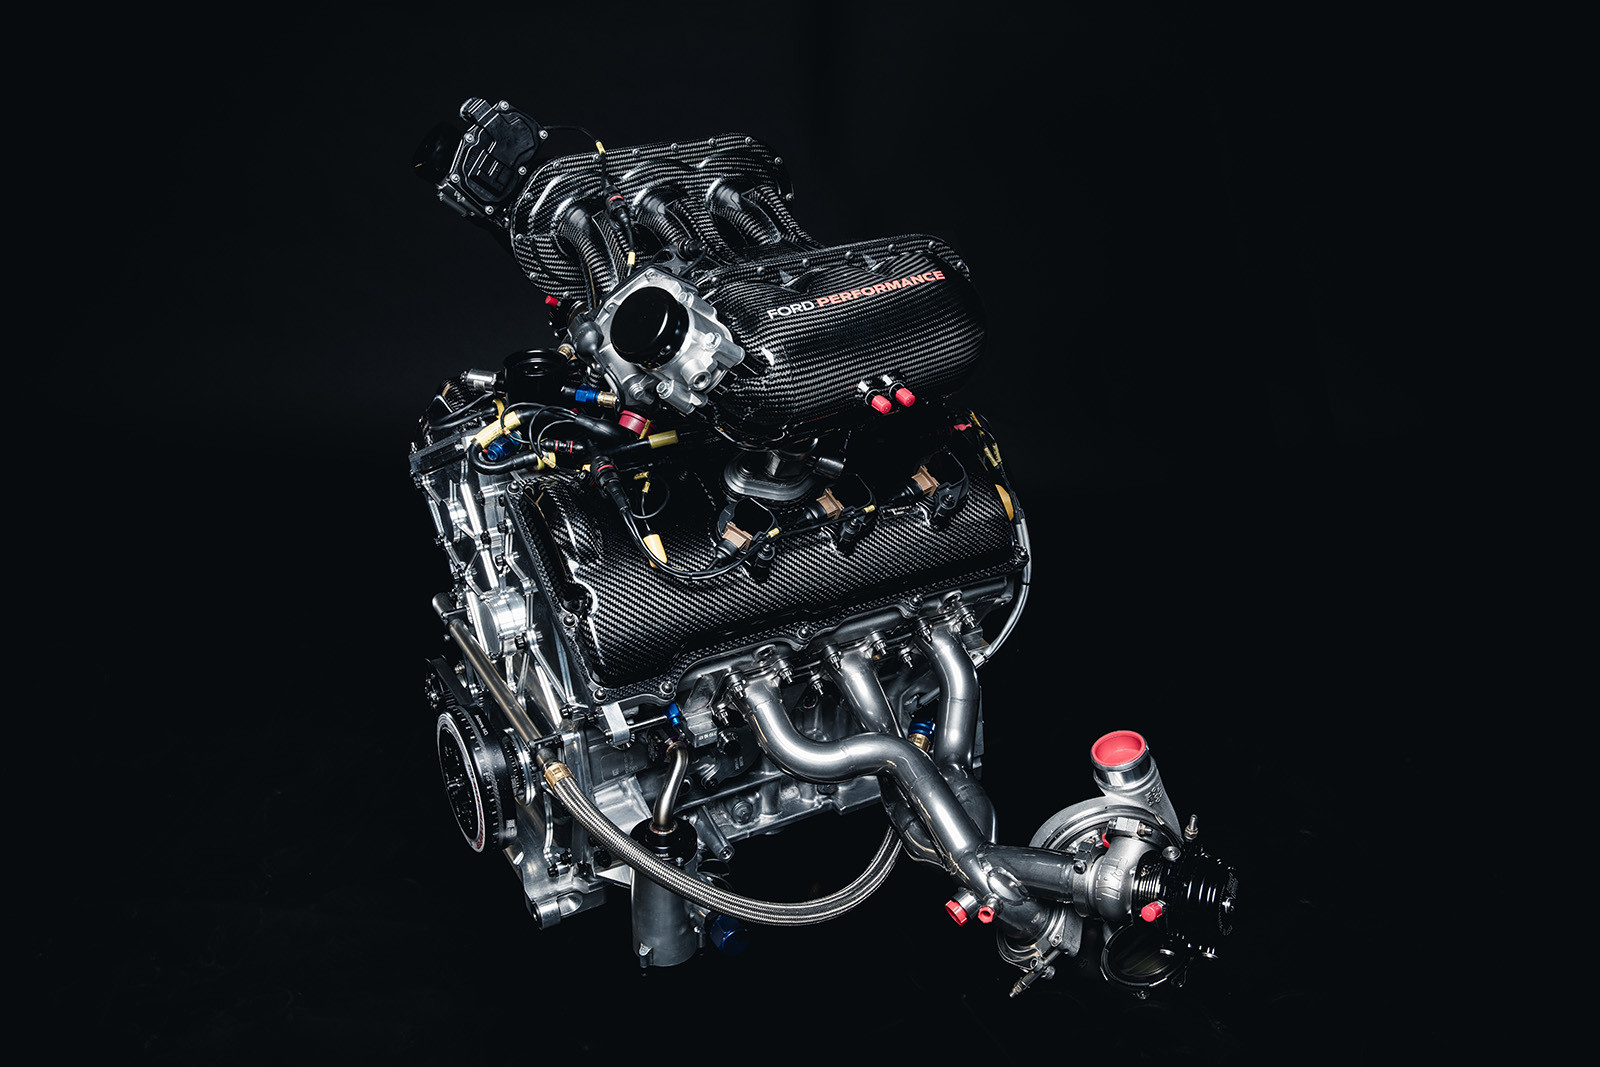 Ford Performance - Roush Yates - V6 3.5L - engine / moteur